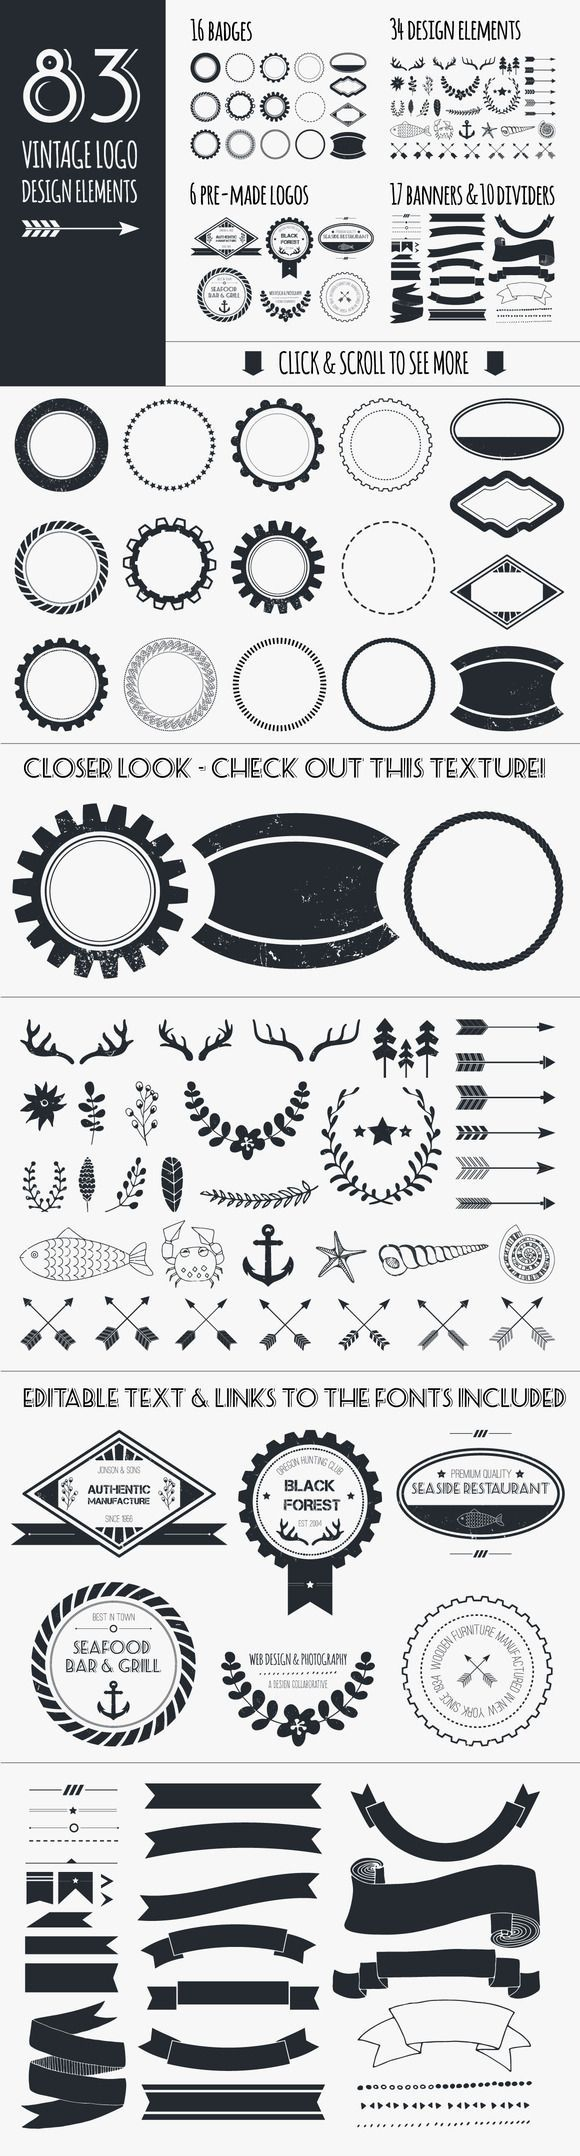 Vintage Logo Elements Bundle by Favete Art #alisonrosenow .. Beautifully done, awesomely priced!: